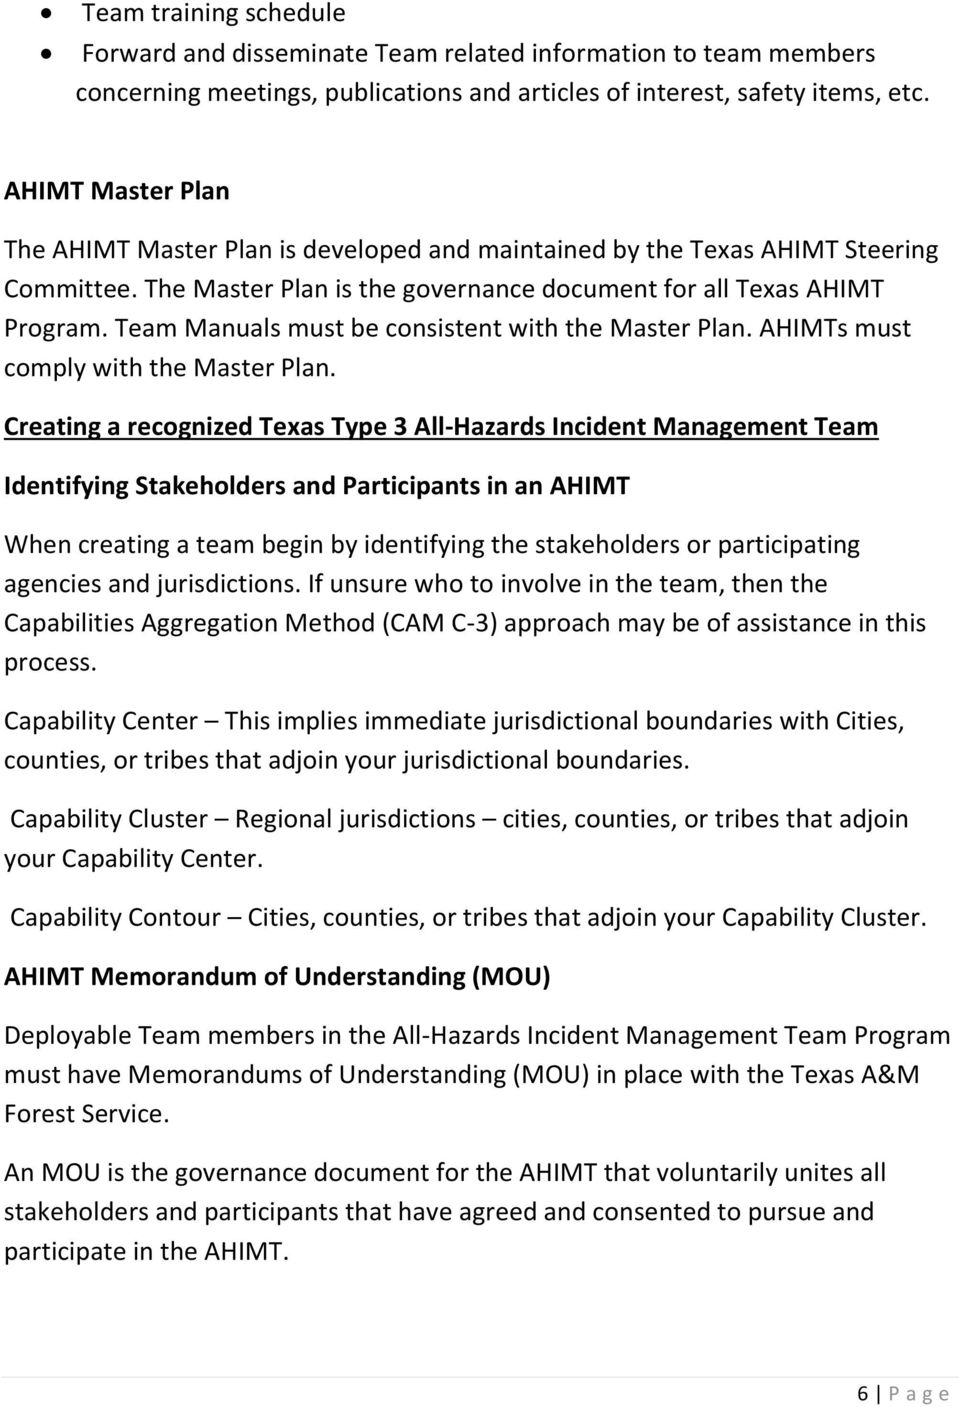 Team Manuals must be consistent with the Master Plan. AHIMTs must comply with the Master Plan.